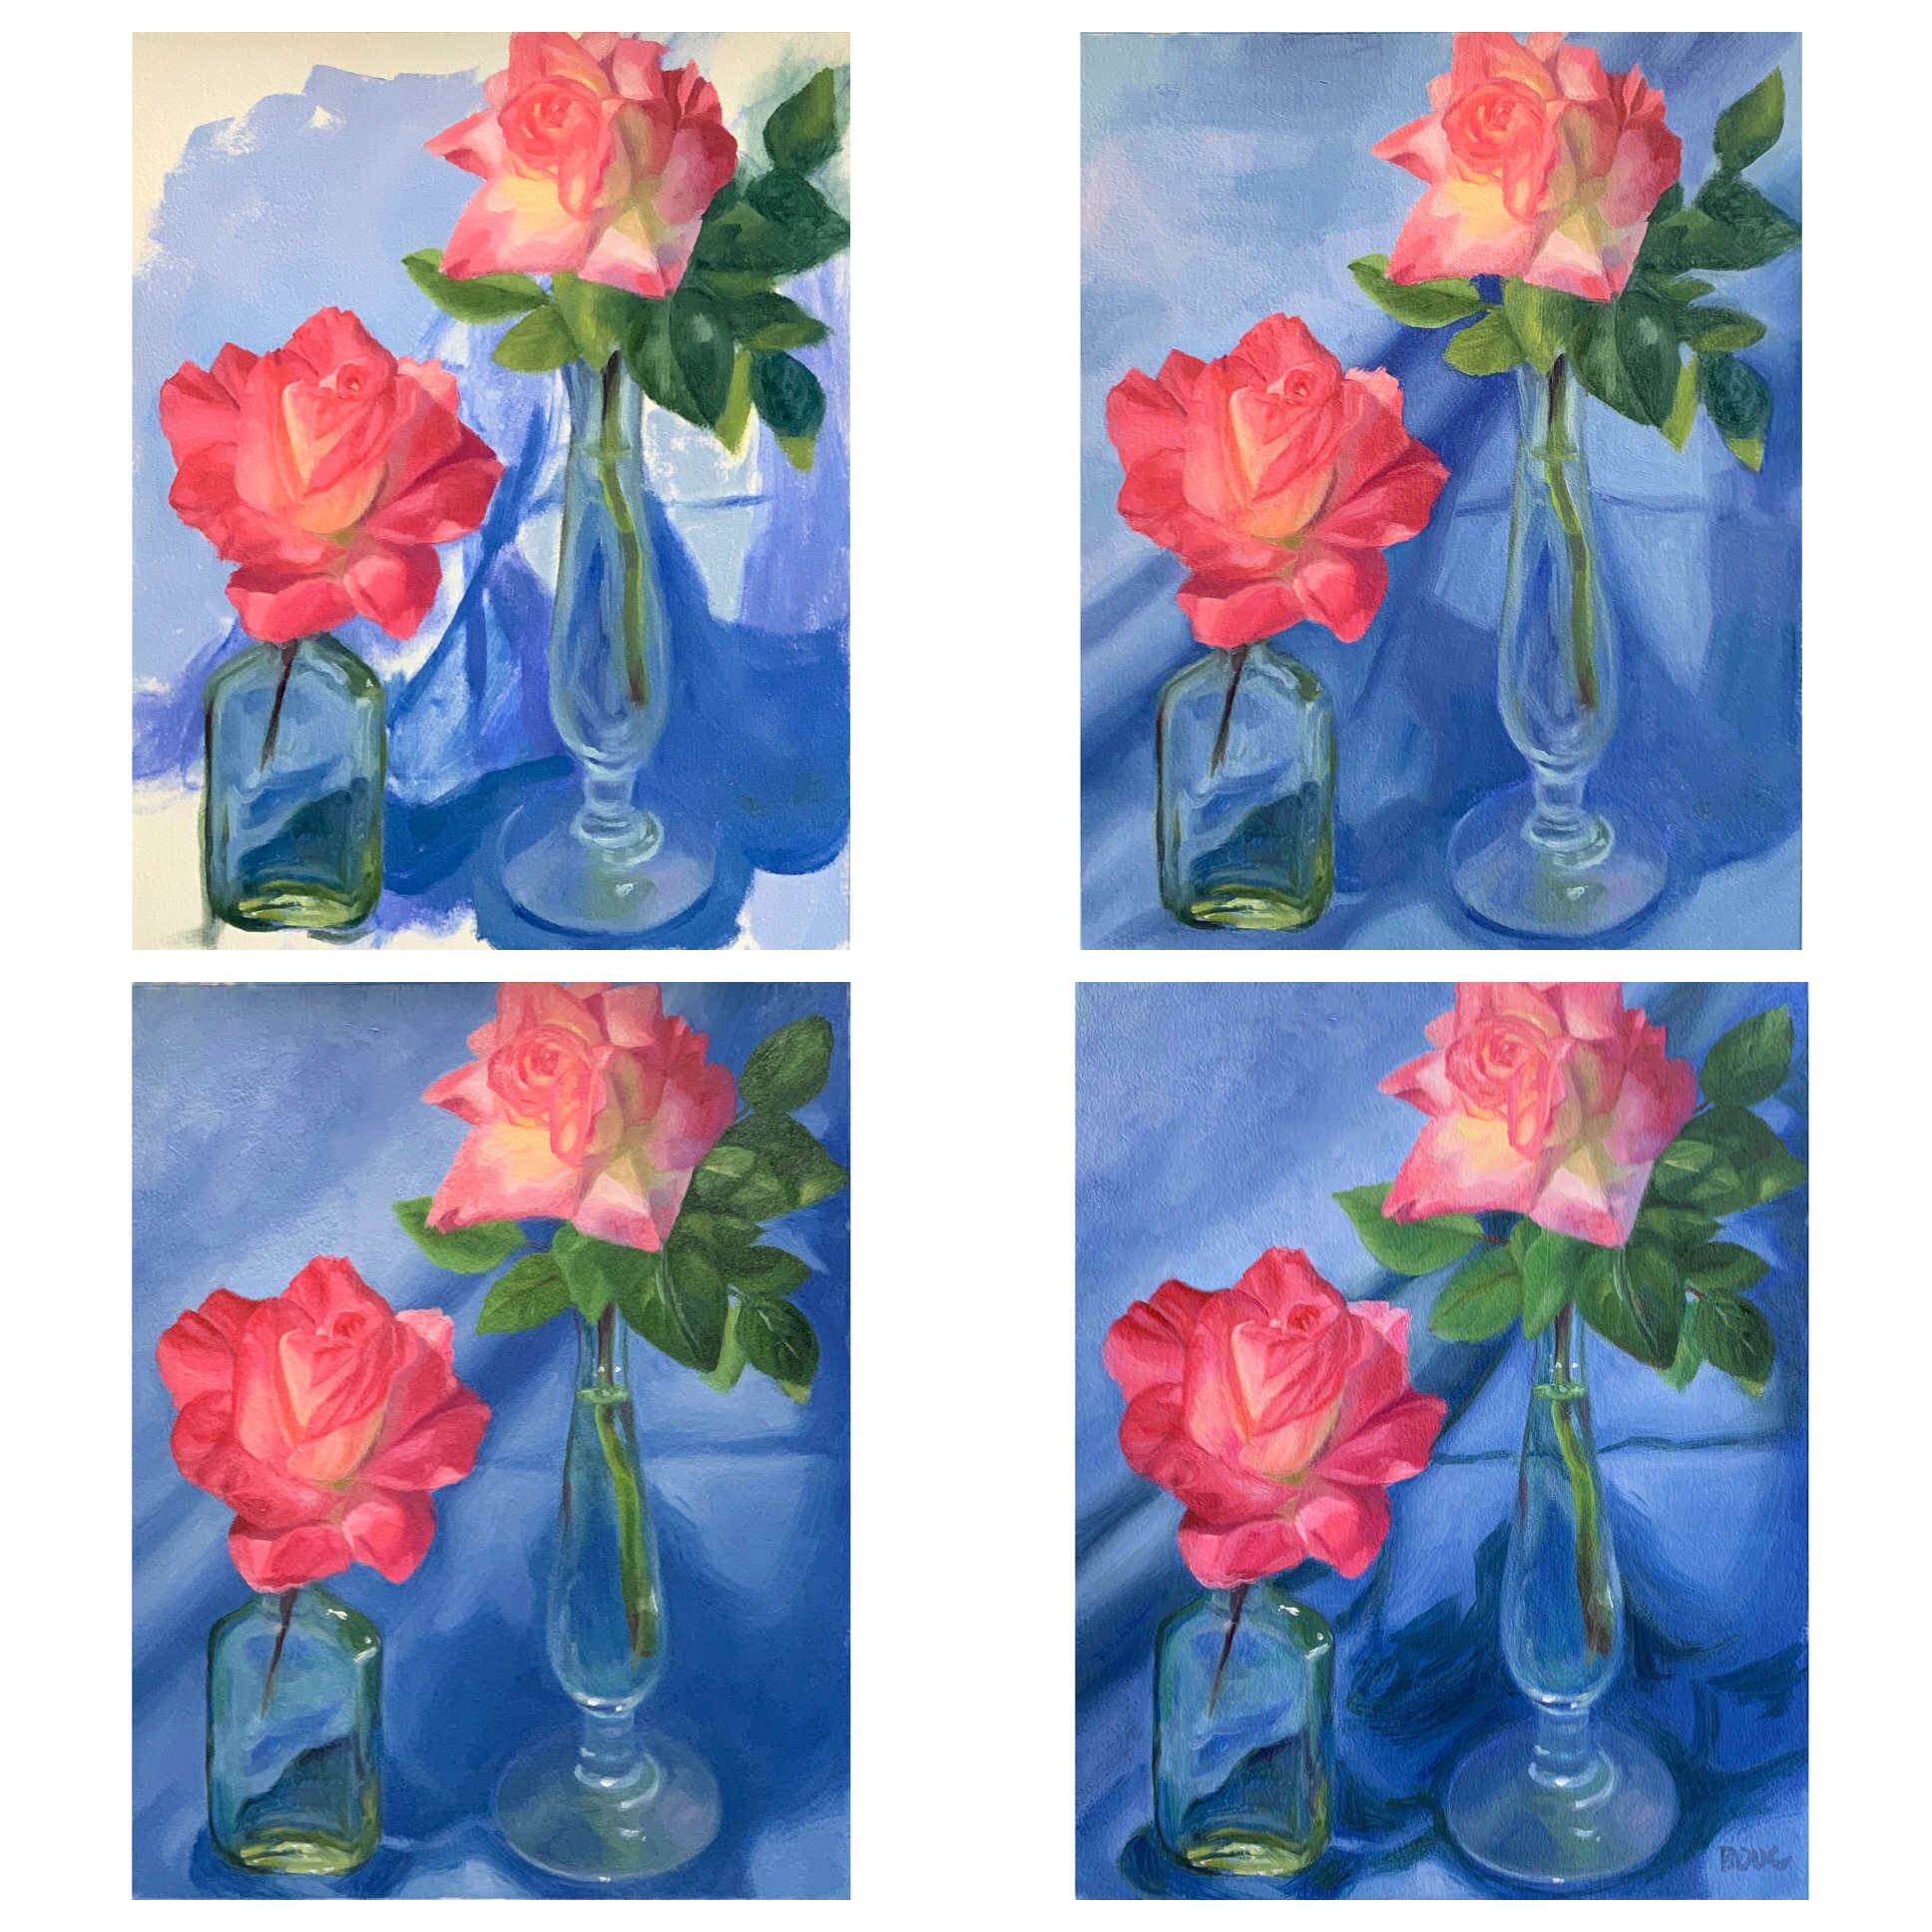 Working on the background and vases, retouching the flowers